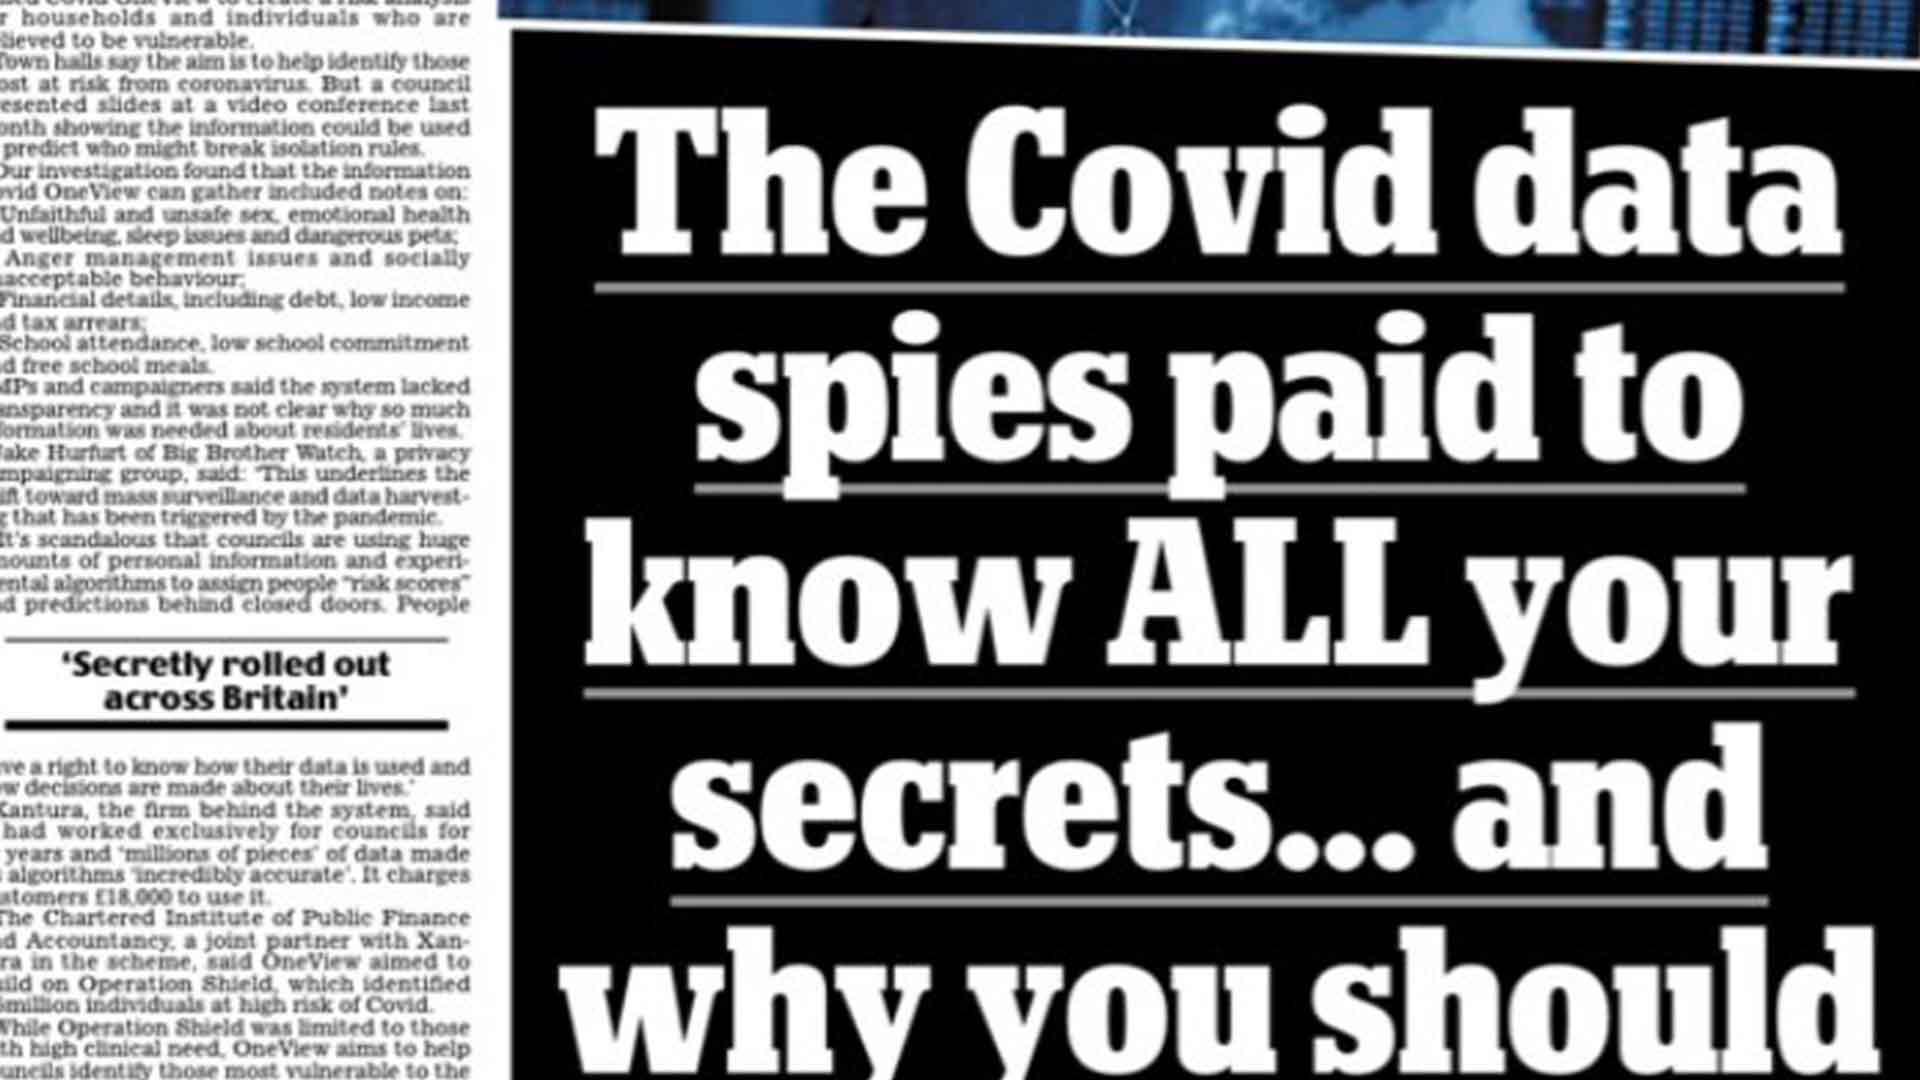 Daily Mail — Councils using huge amounts of highly personal data and predictive analytics to create Covid risk scores